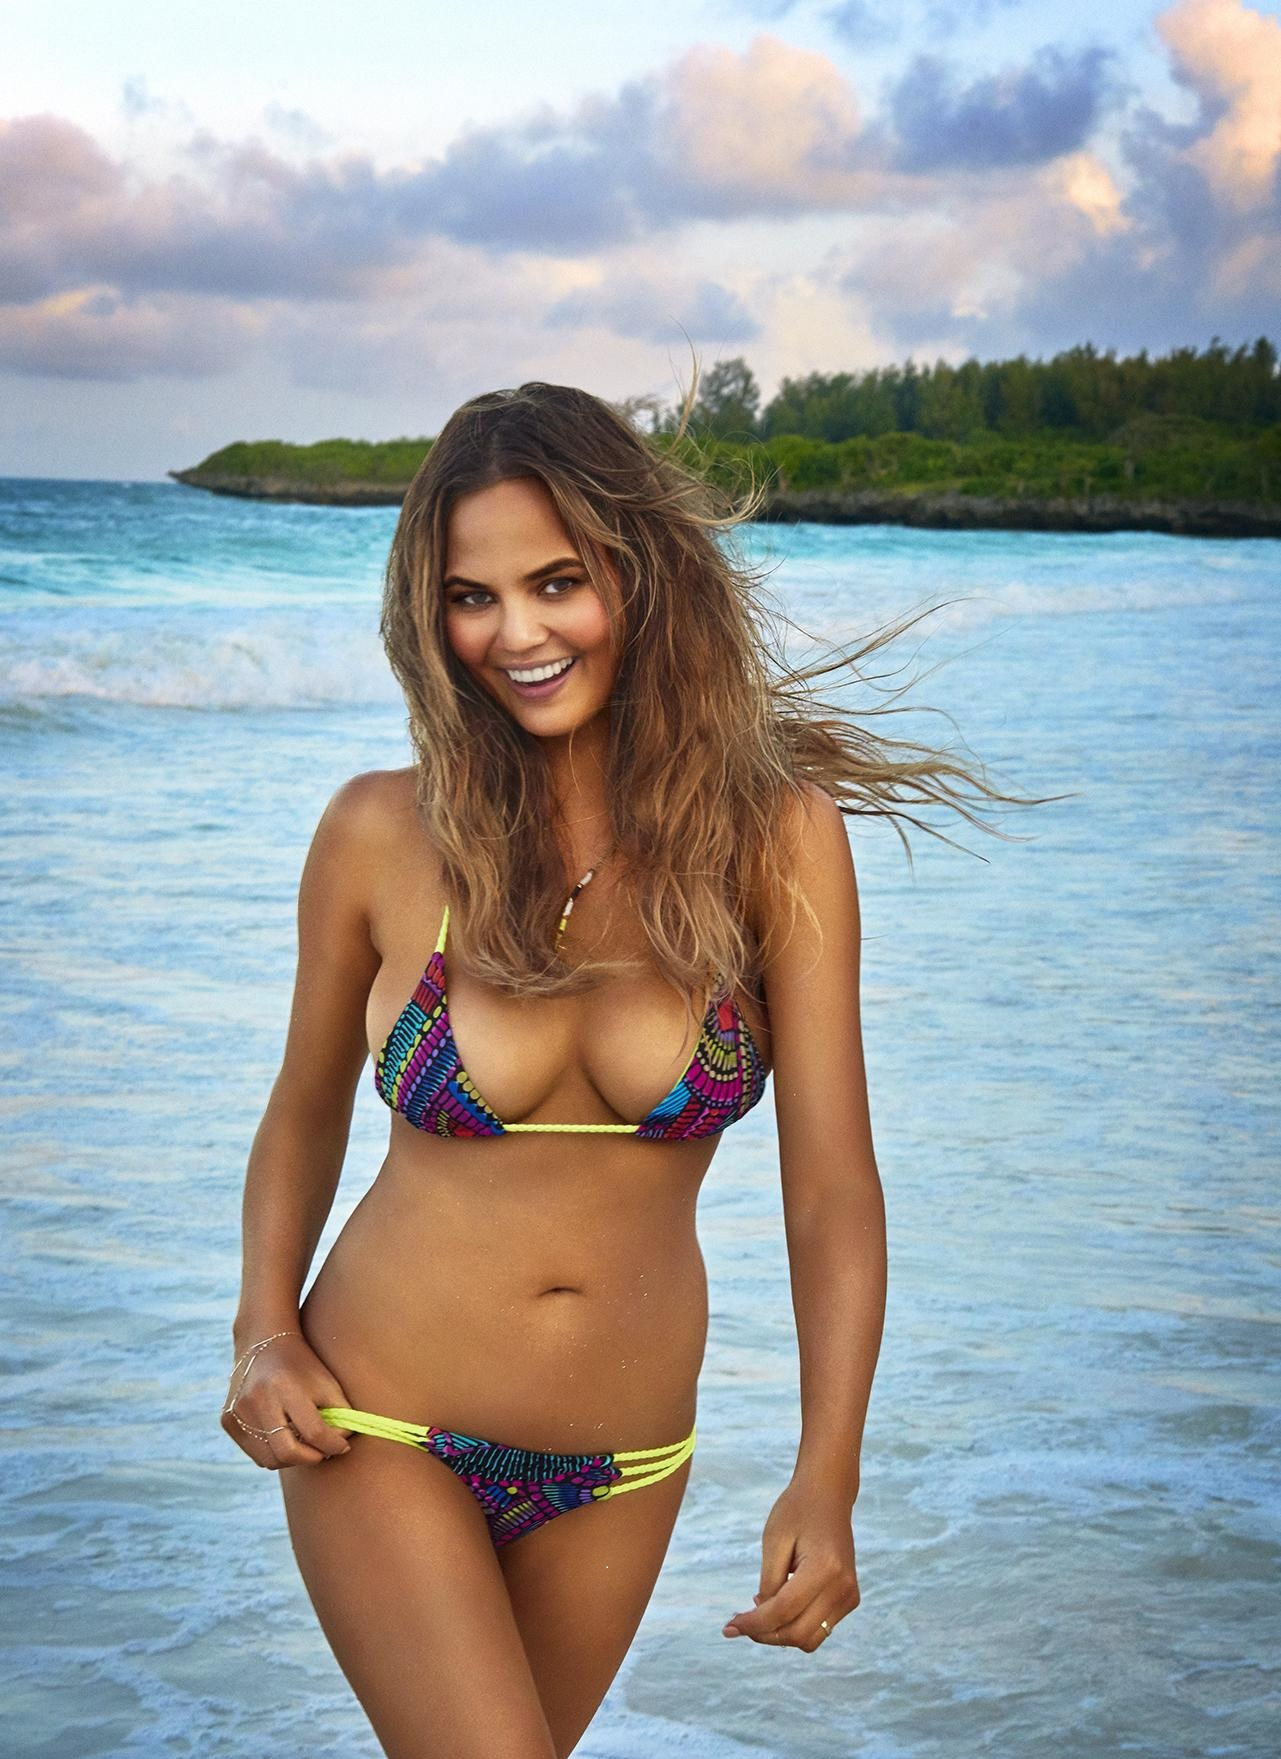 chrissy-teigen-spicy-photos